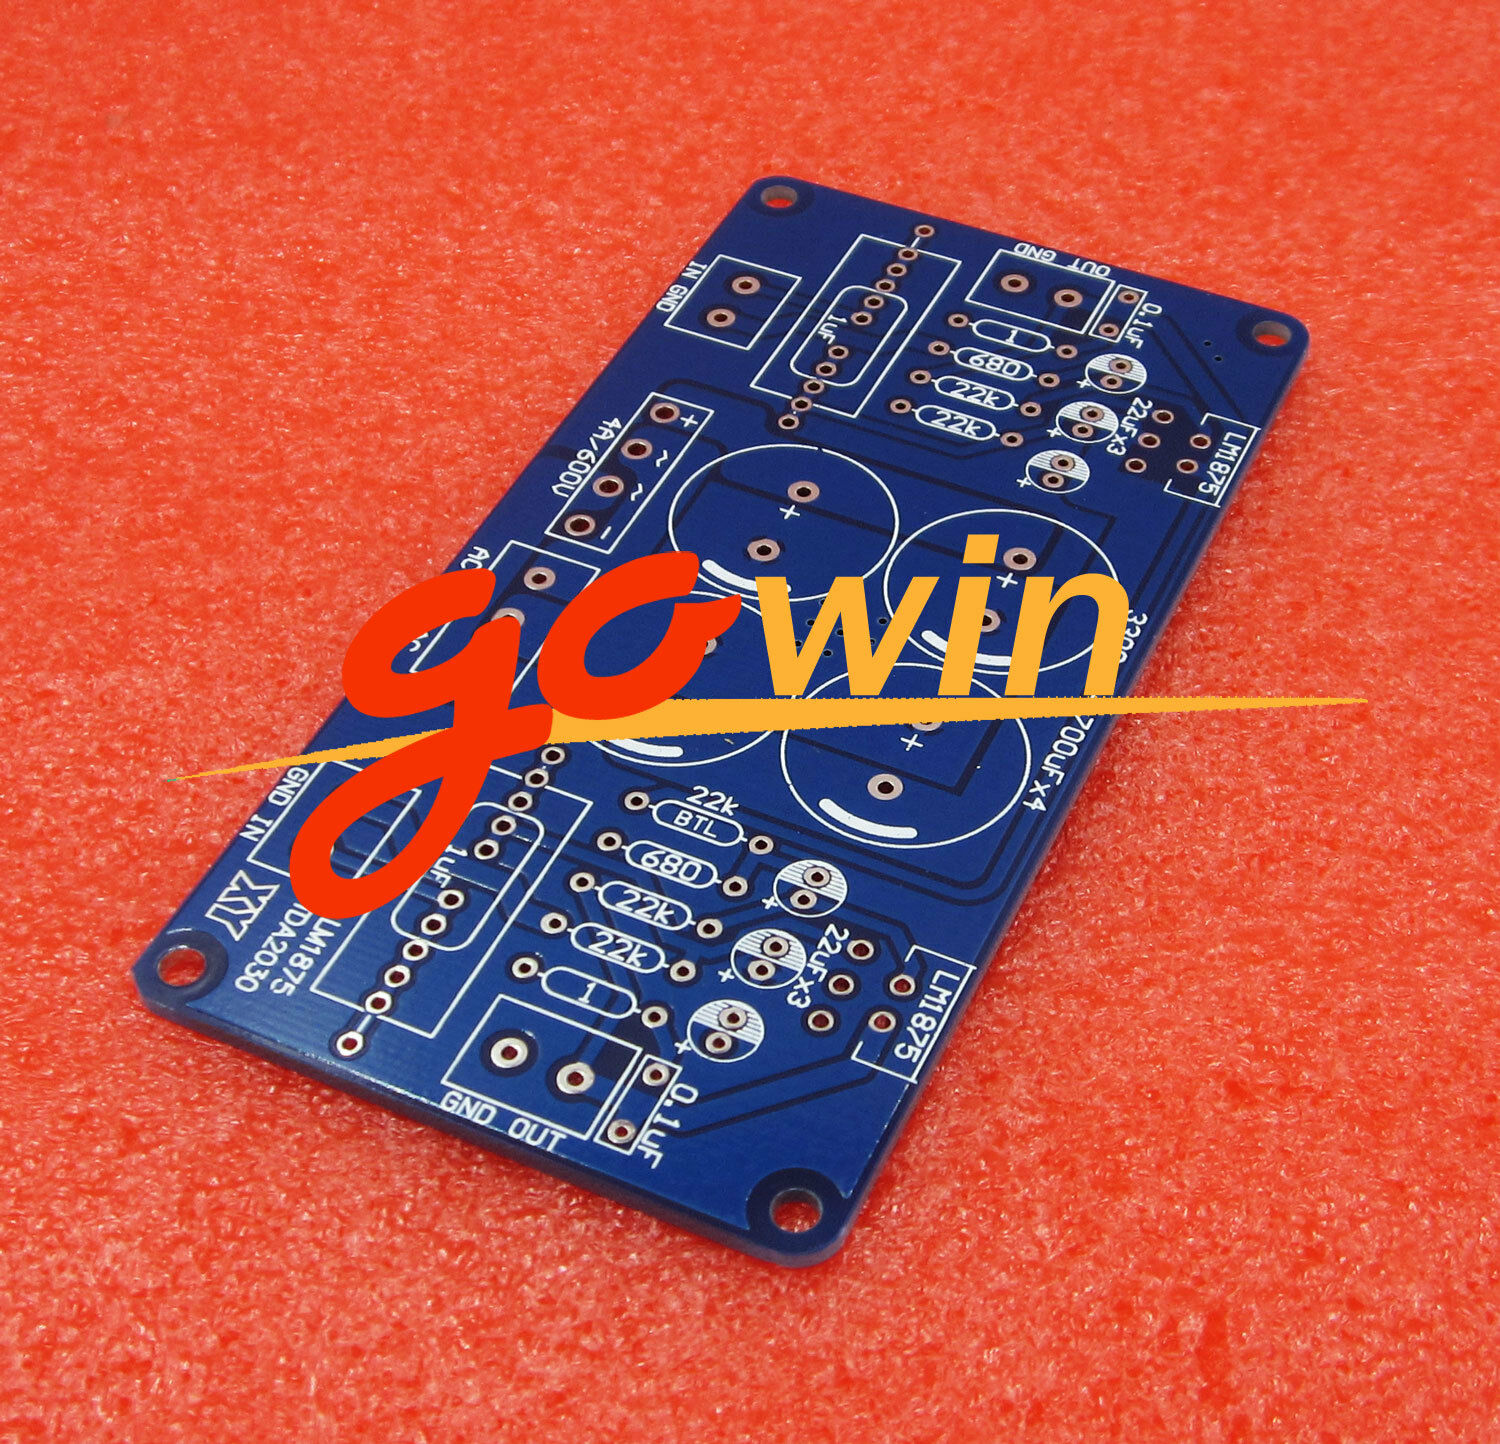 Lm1875t Lm675 Tda2030 Tda2030a Audio Power Amplifier Pcb Board Diy Amplifierwith 1 Of 4only 5 Available See More